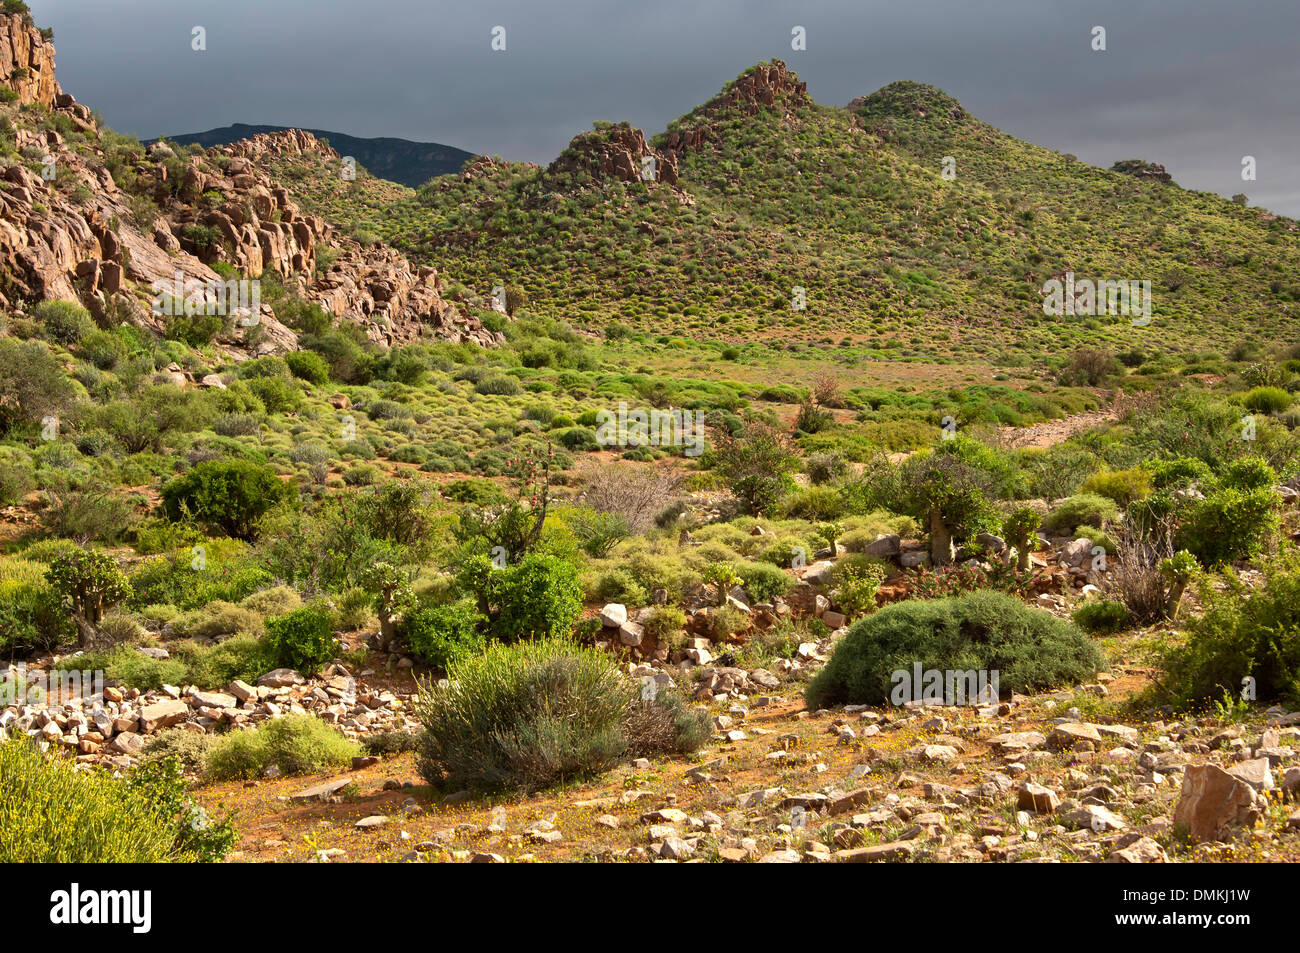 Nama Karoo shrubland, Richtersveld, Northern Cape province, South Africa - Stock Image